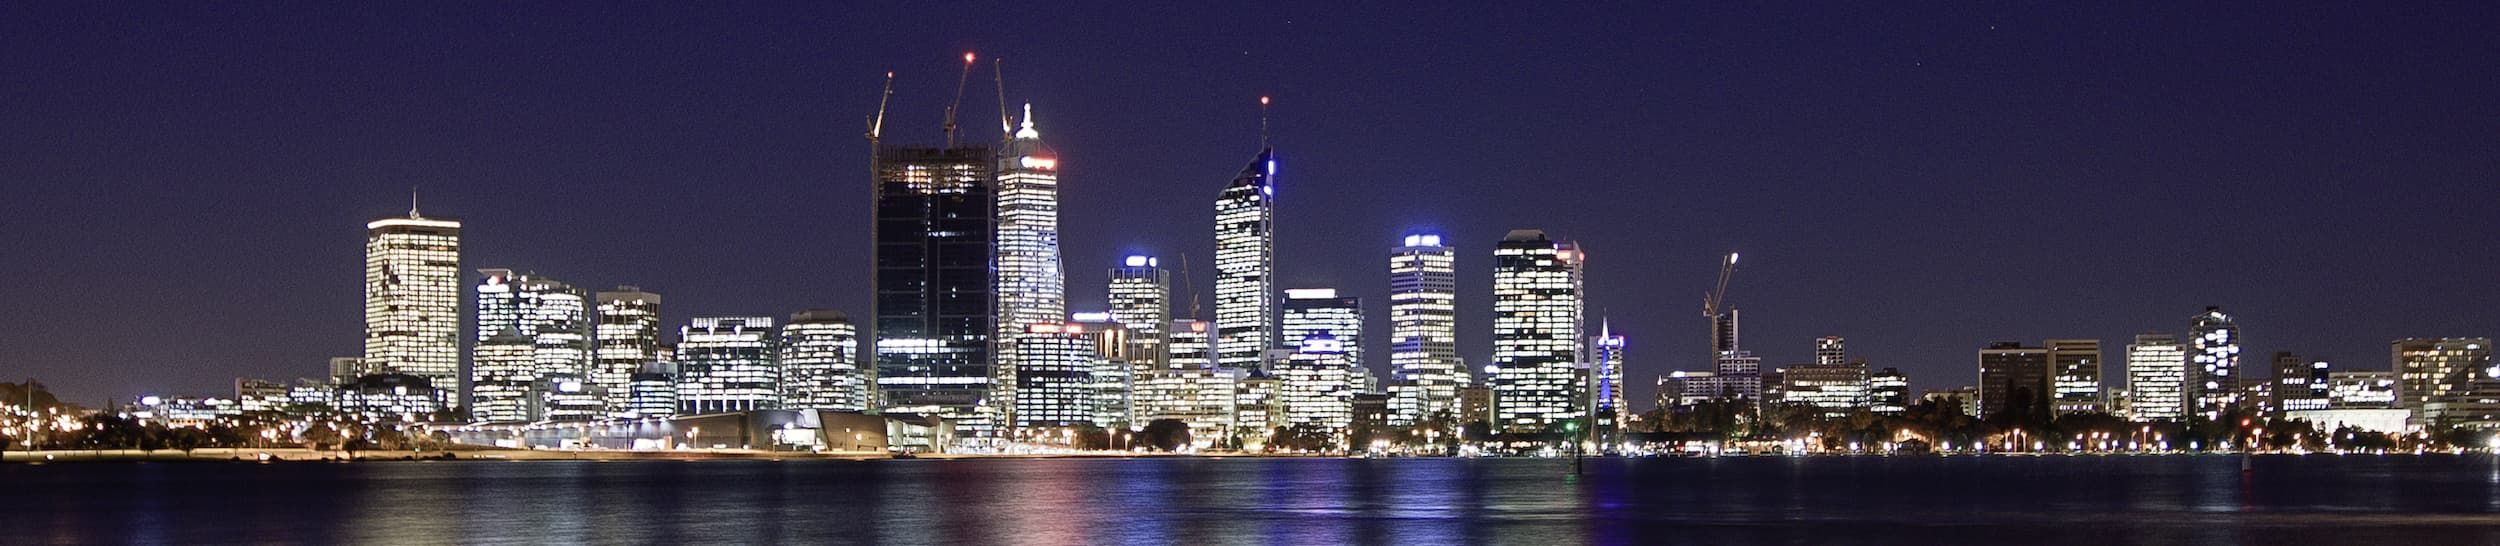 Pictured: skyline of Perth